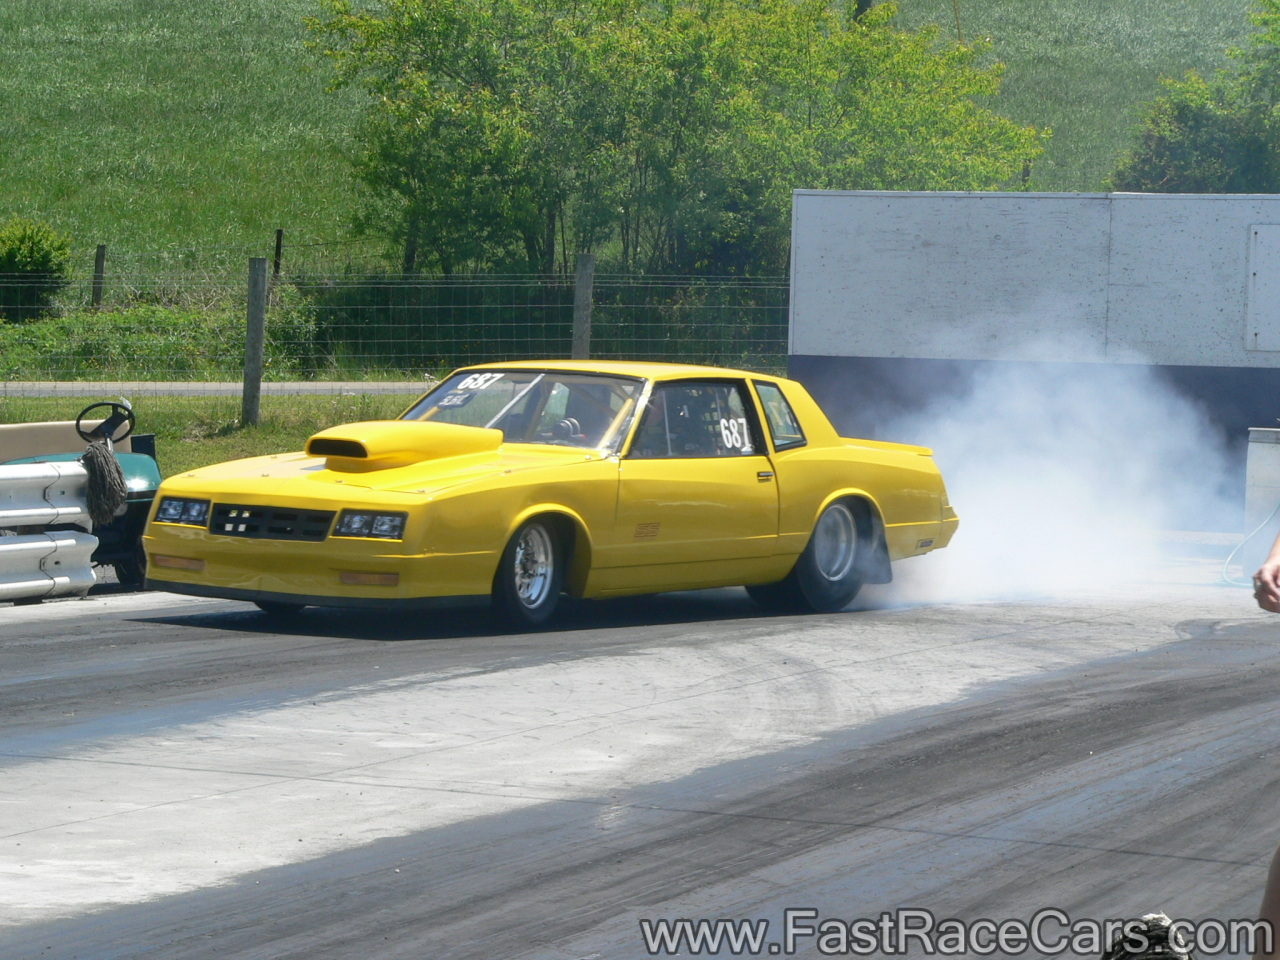 Drag Race Cars > Monte Carlos > Picture of Yellow Monte Carlo Drag ...